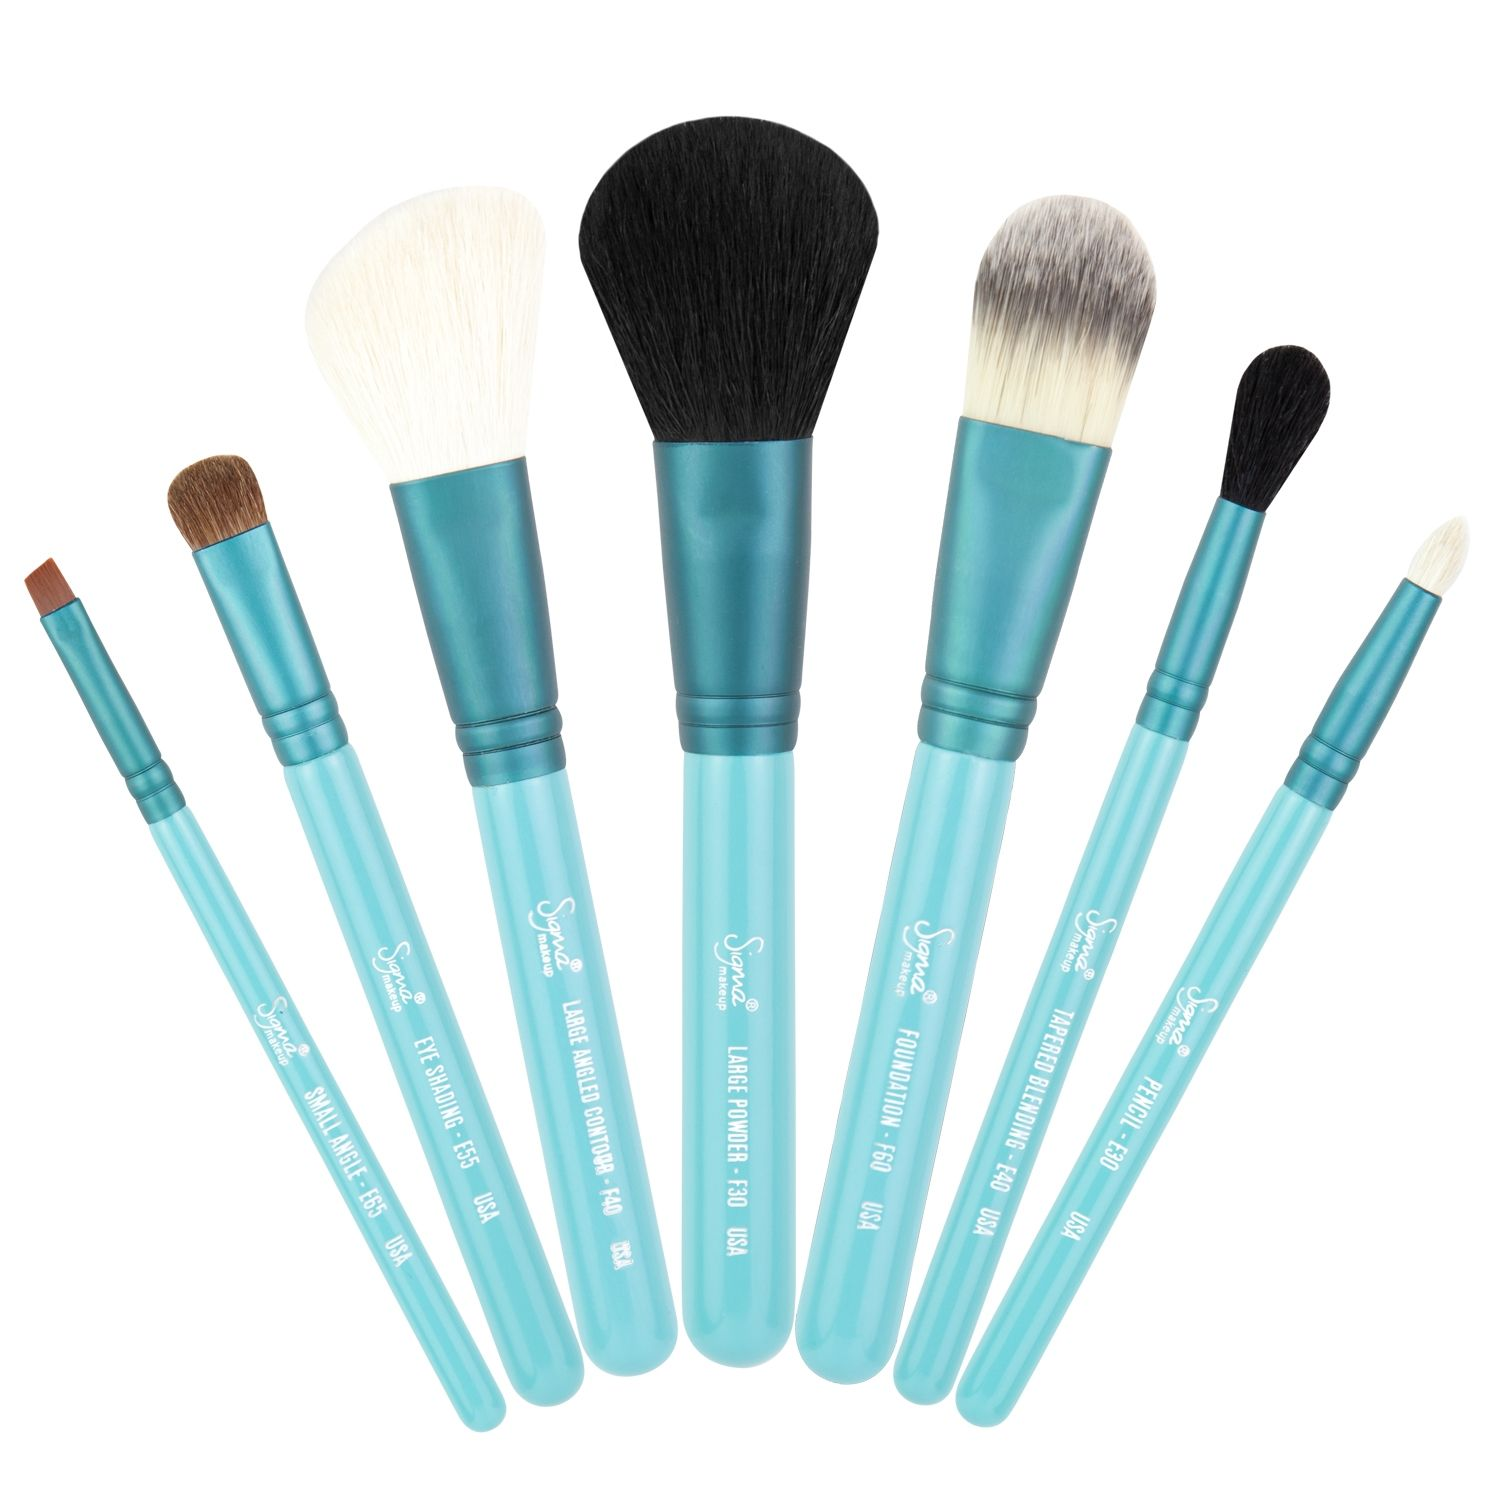 Travel Kit Make Me Cool Eye brushes set, Travel size